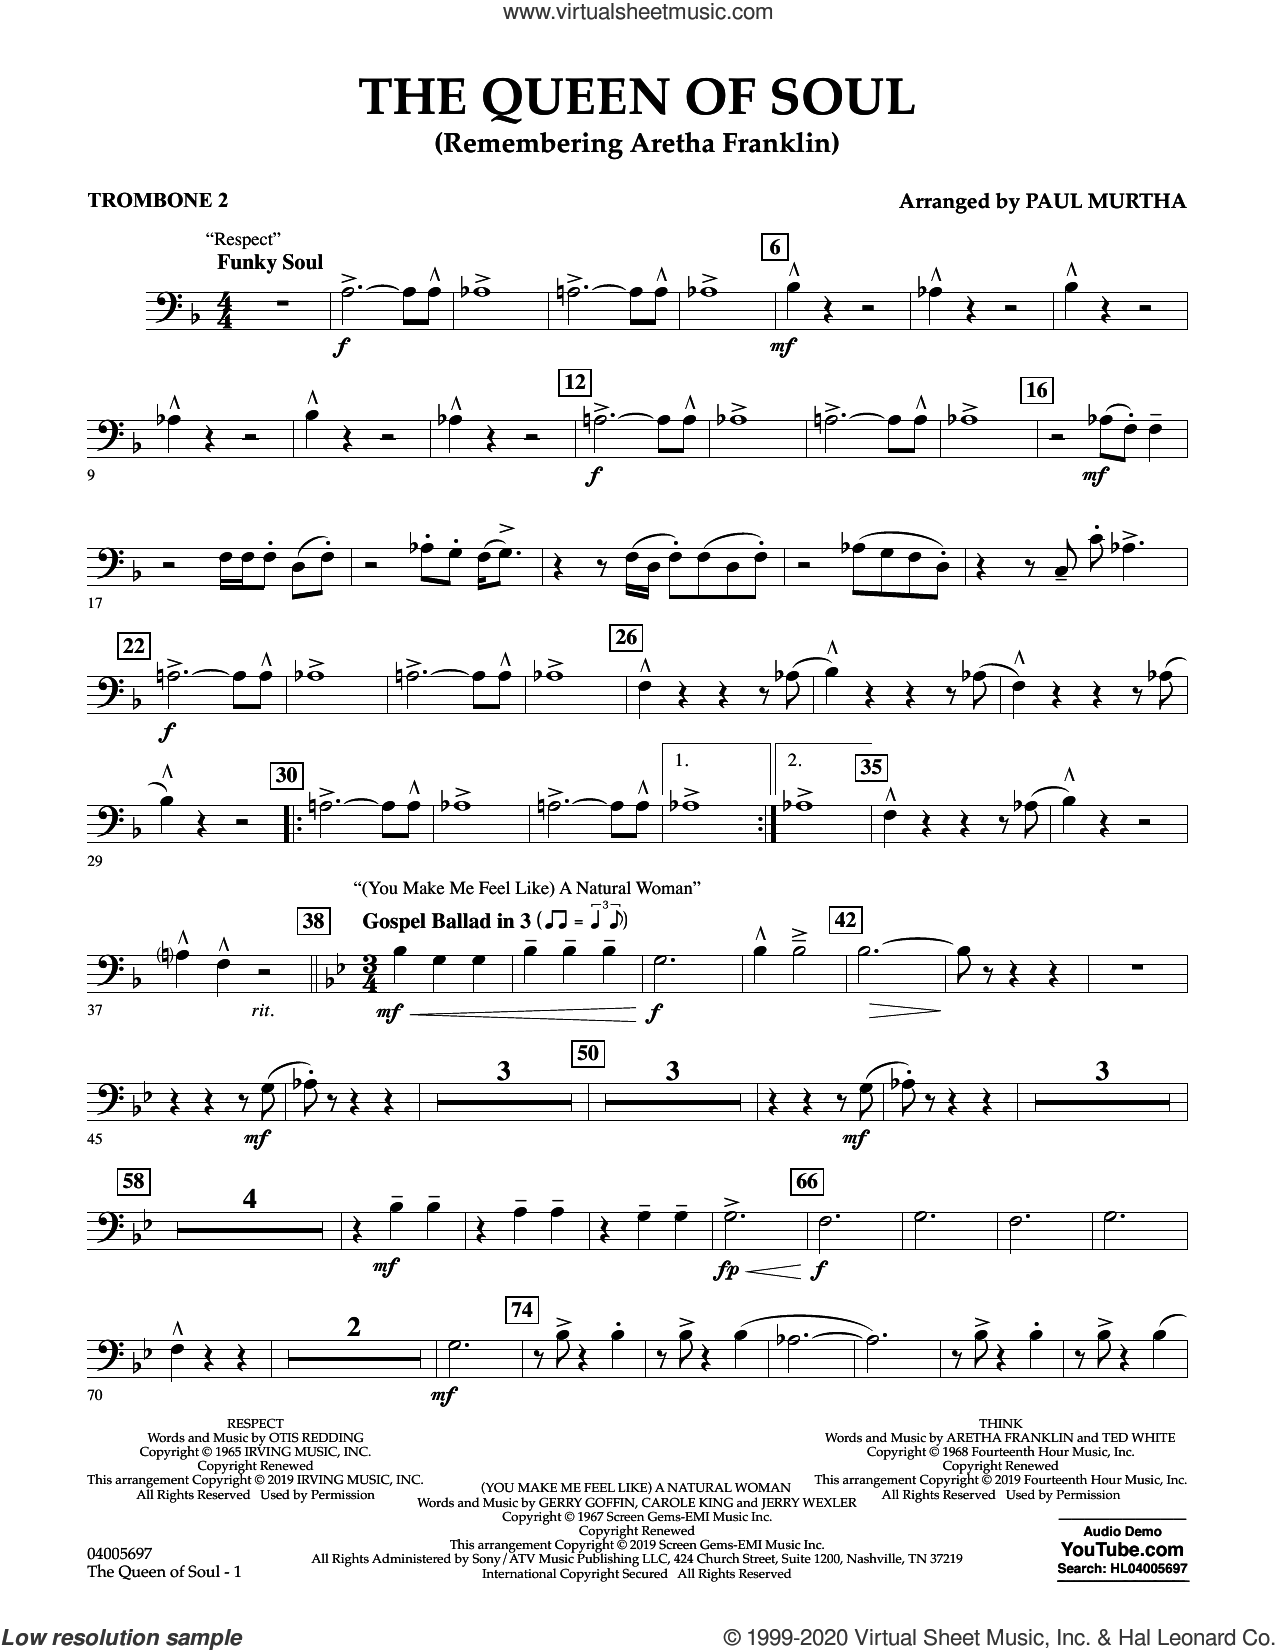 The Queen Of Soul (arr. Paul Murtha)- Conductor Score (Full Score) sheet music for concert band (trombone 2) by Aretha Franklin and Paul Murtha, intermediate skill level